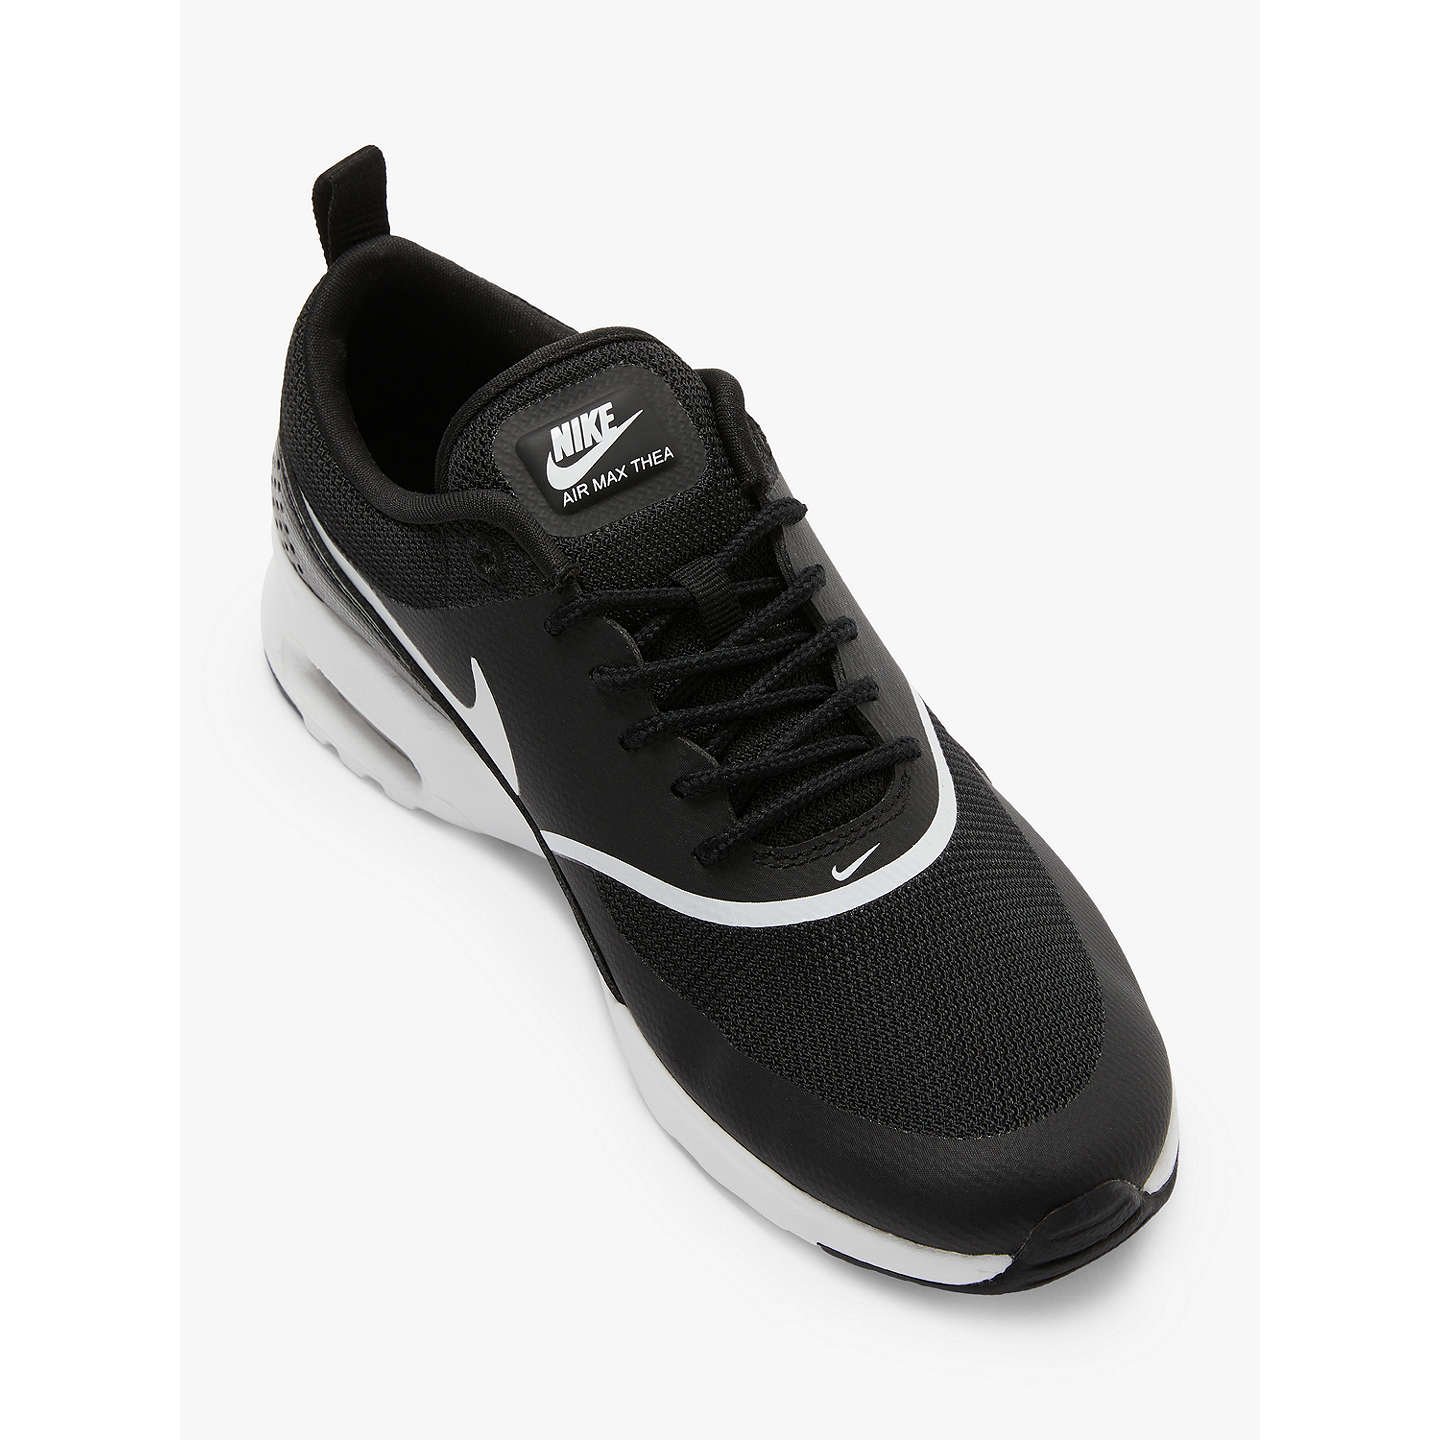 BuyNike Air Max Thea Women's Trainers, Black/White, 4 Online at johnlewis.